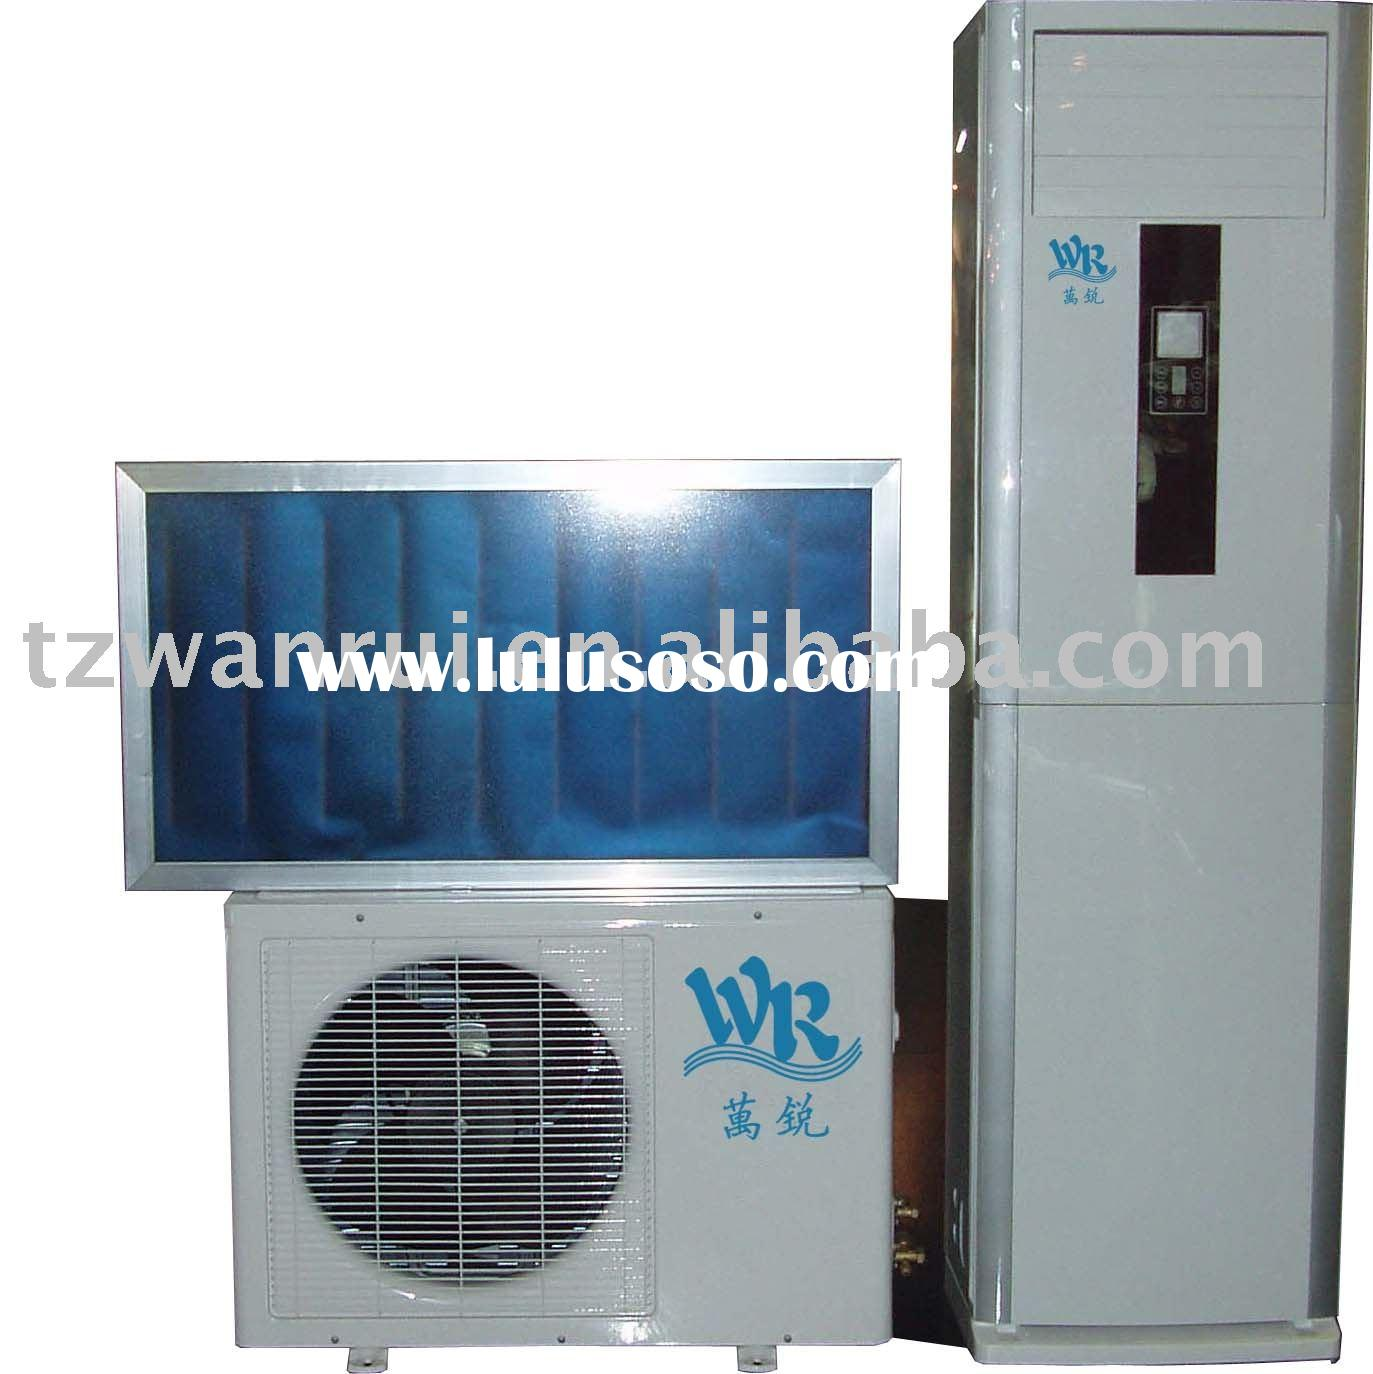 faber air conditioner portable in malaysia faber air conditioner  #26486D